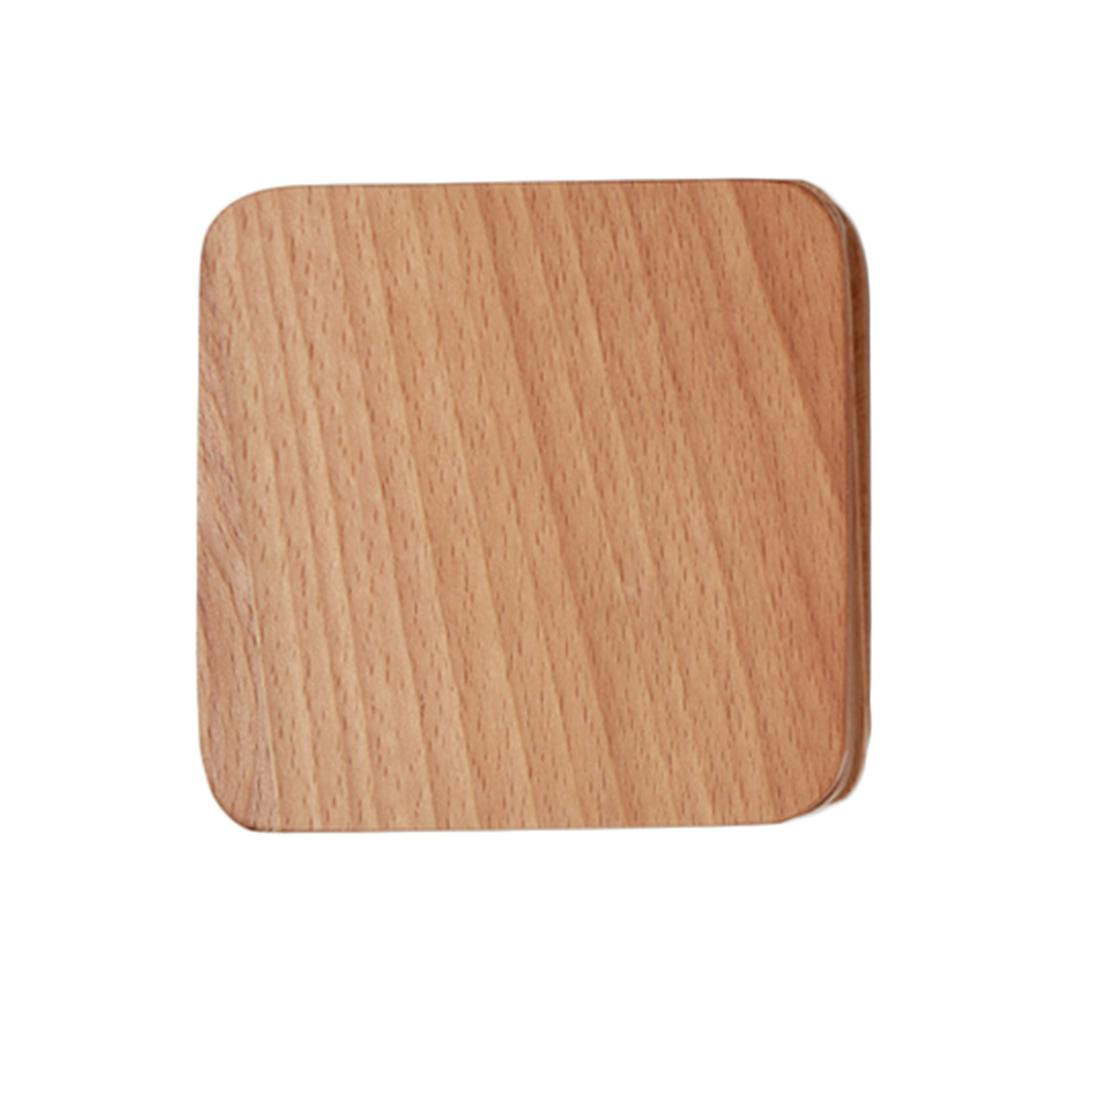 360DSC Japanese Style Beech Coasters Square Shape Solid Wood CupMat Placemat(No Hollow Out) - Burlywood